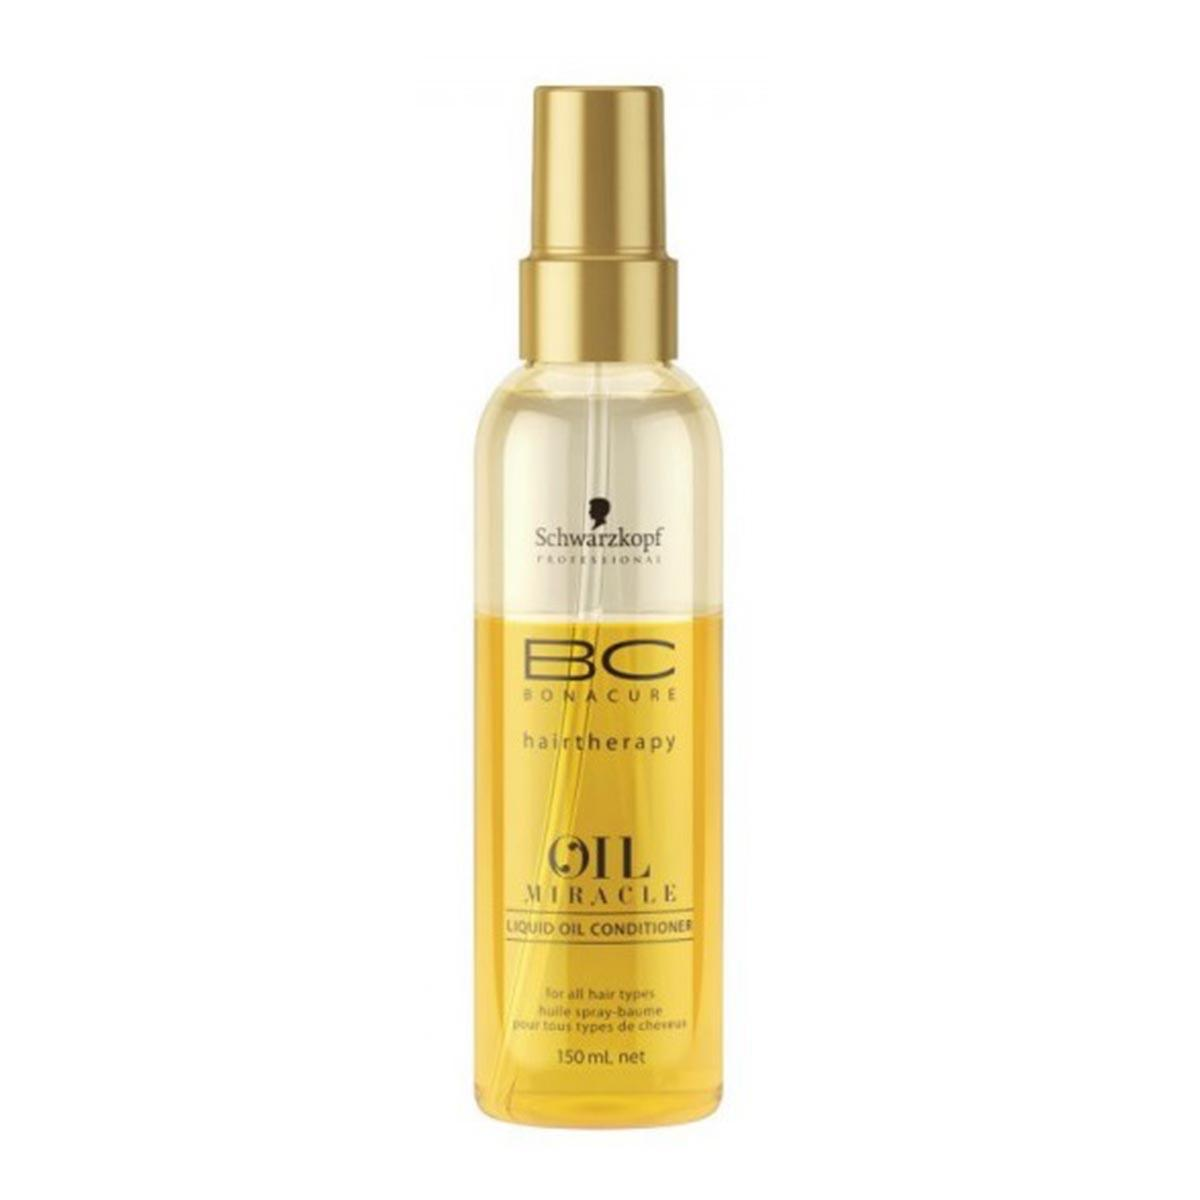 Schwarzkopf Bonacure Hairtherapy Oil Miracle Liquid Oil Conditioner 150 ml Vapo